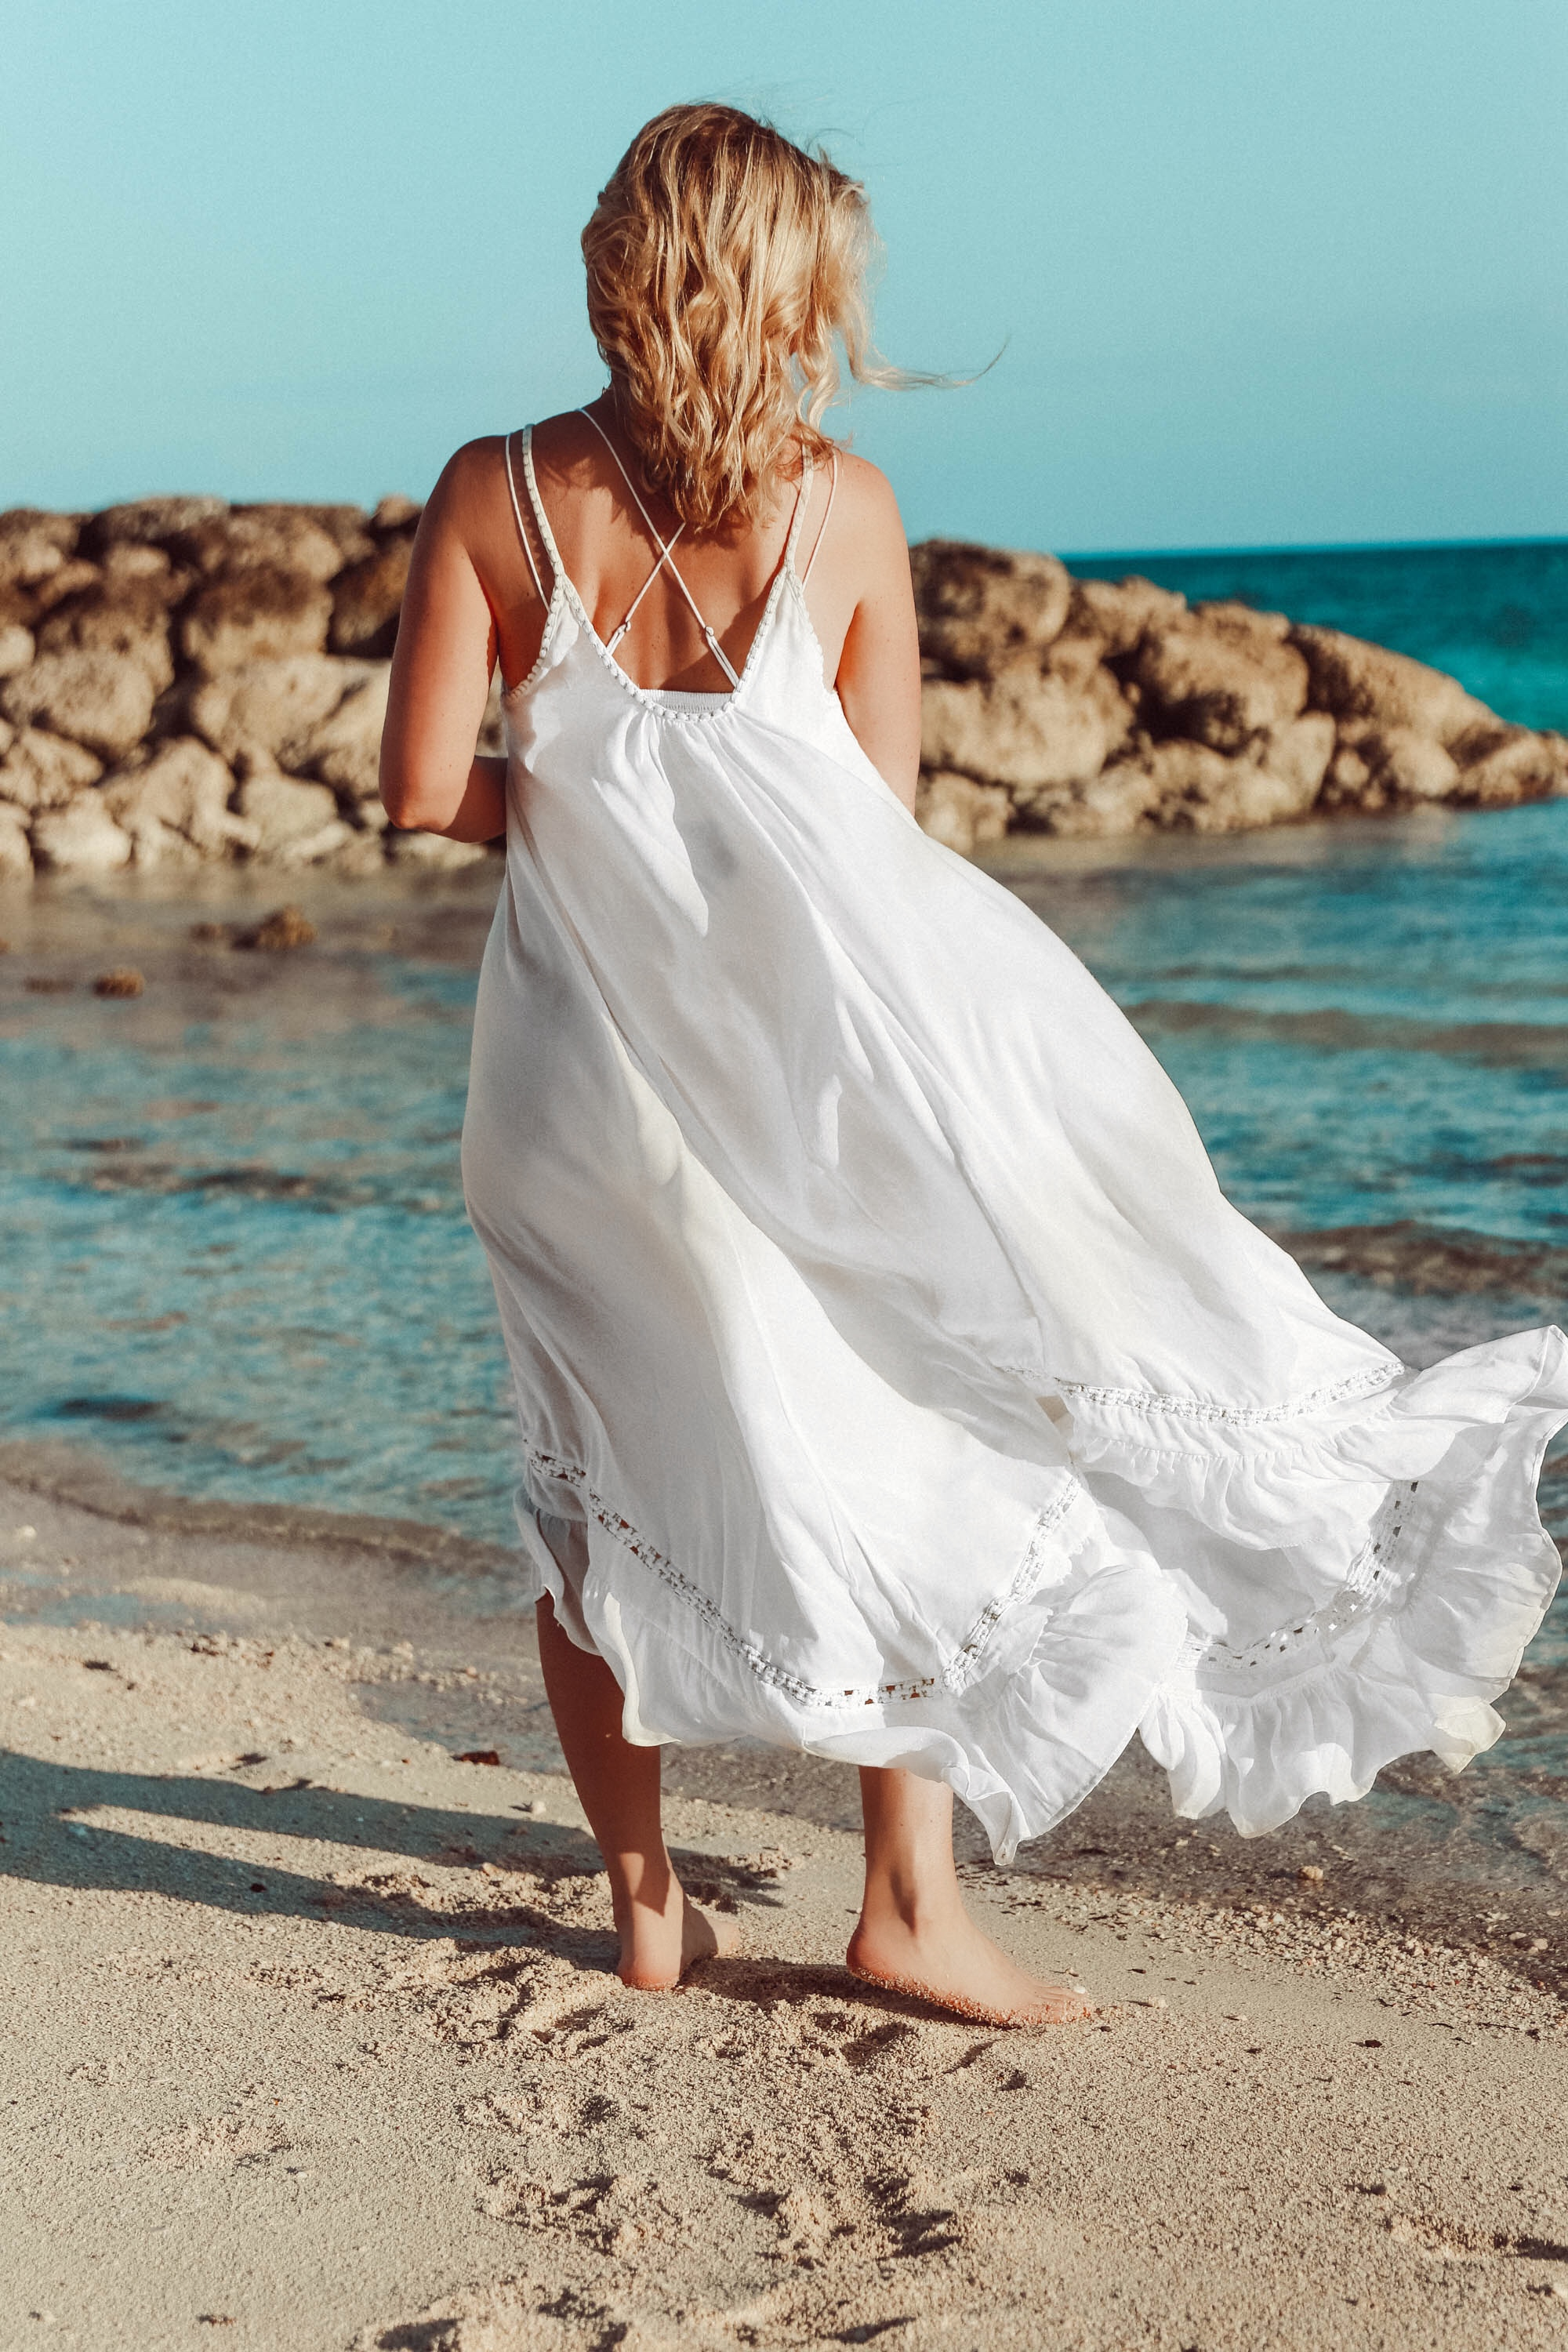 white Free People maxi swimsuit coverup outfit on the beach